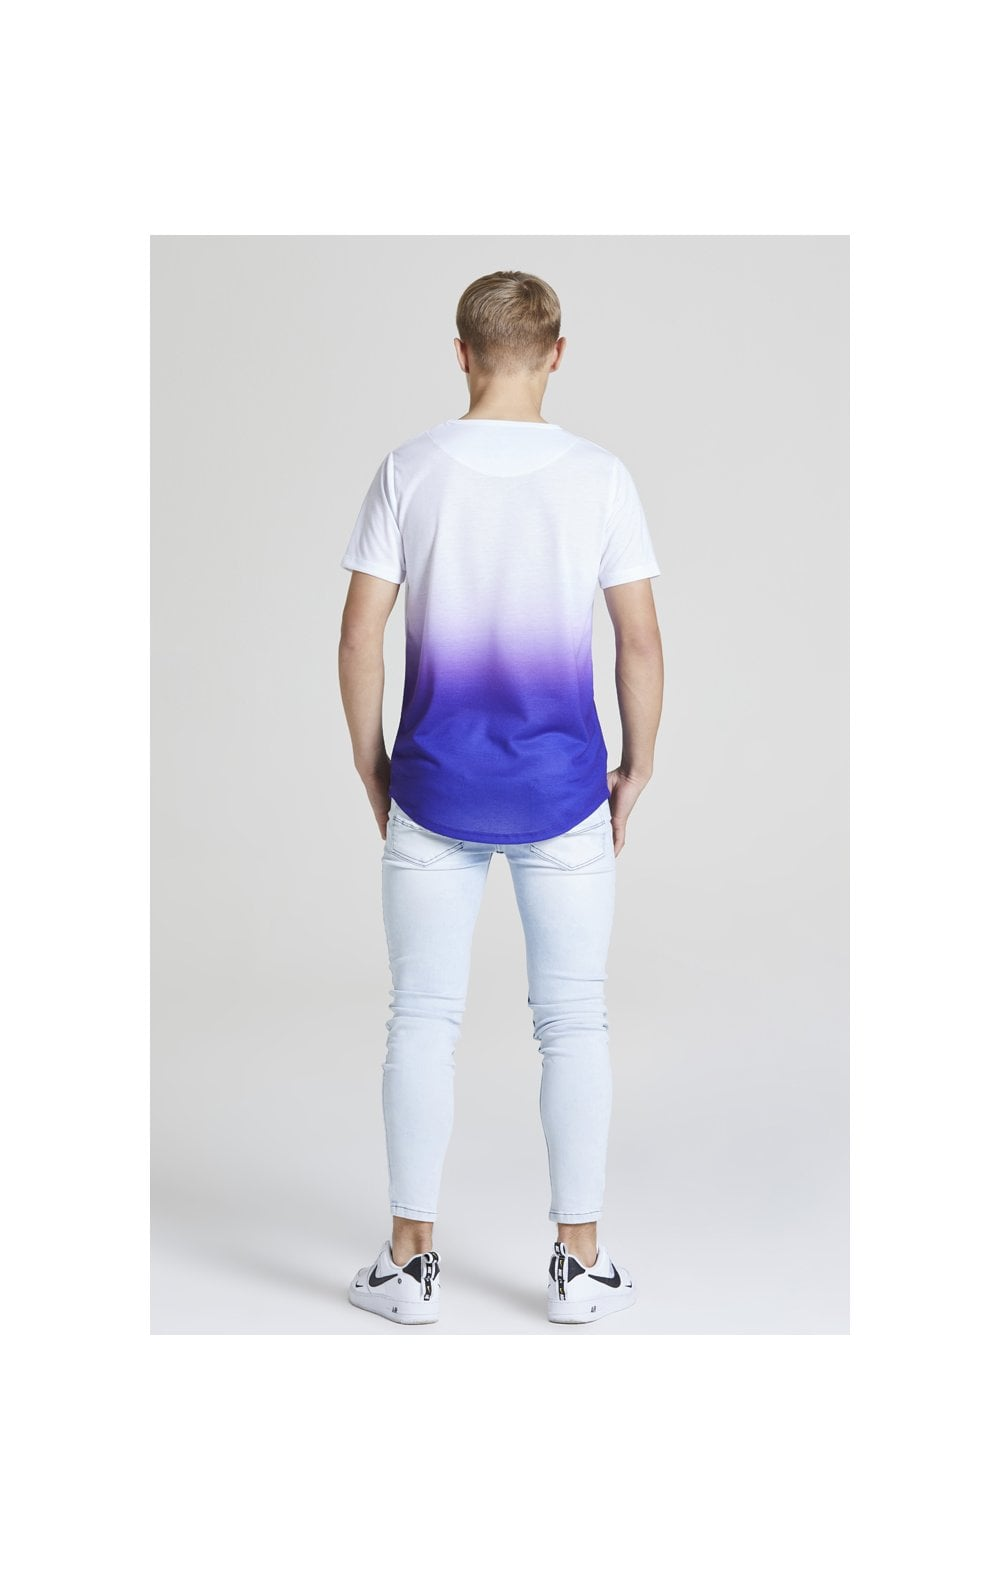 Load image into Gallery viewer, Illusive London Core Fade Tee – White & Purple (5)